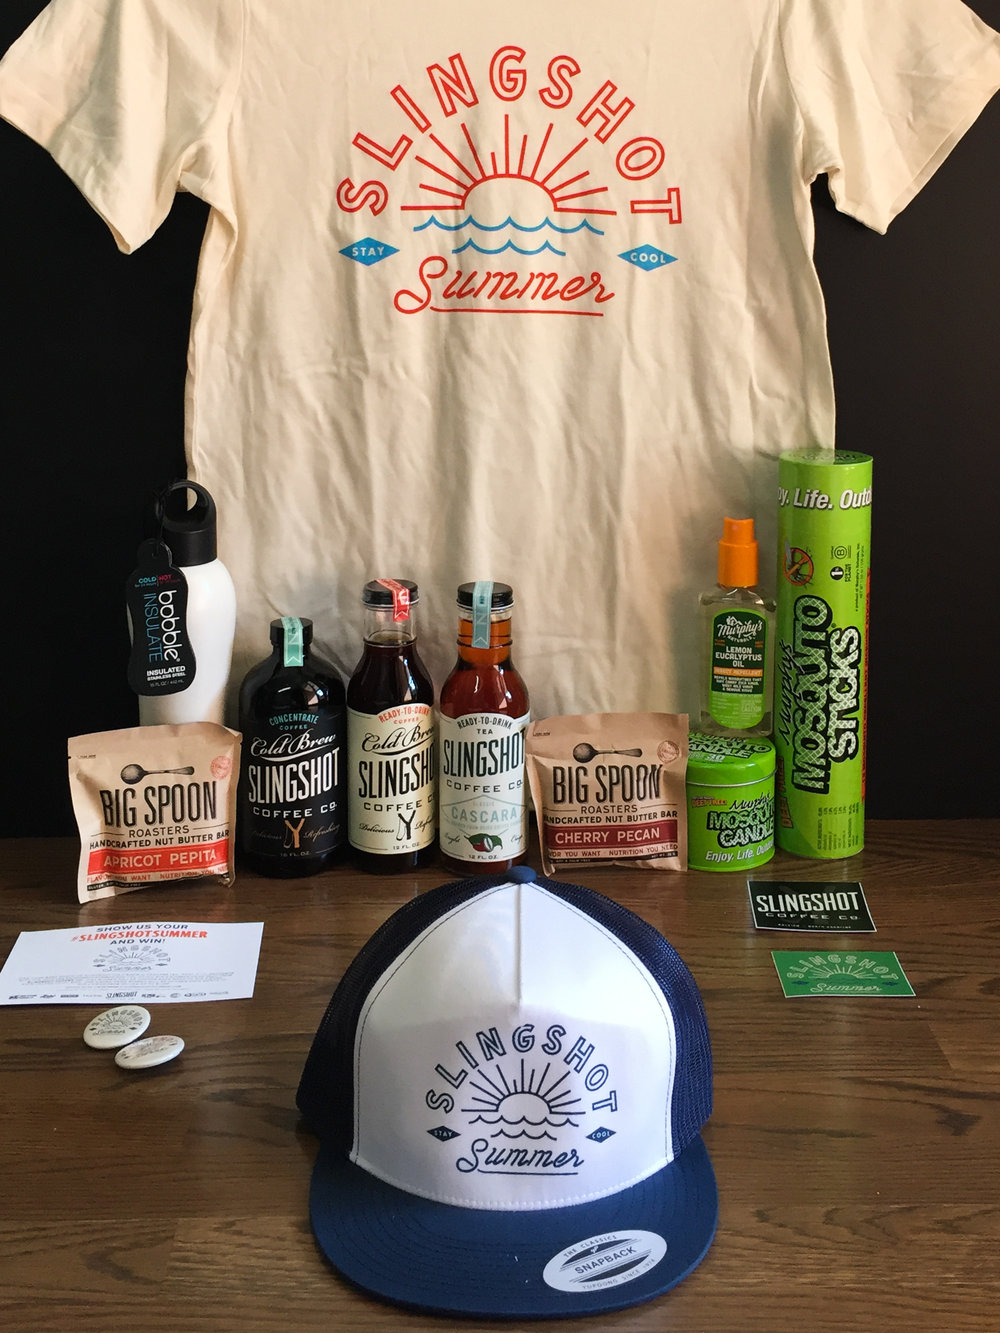 Slingshot-coffee-co-summer-giveaway-prize-pack